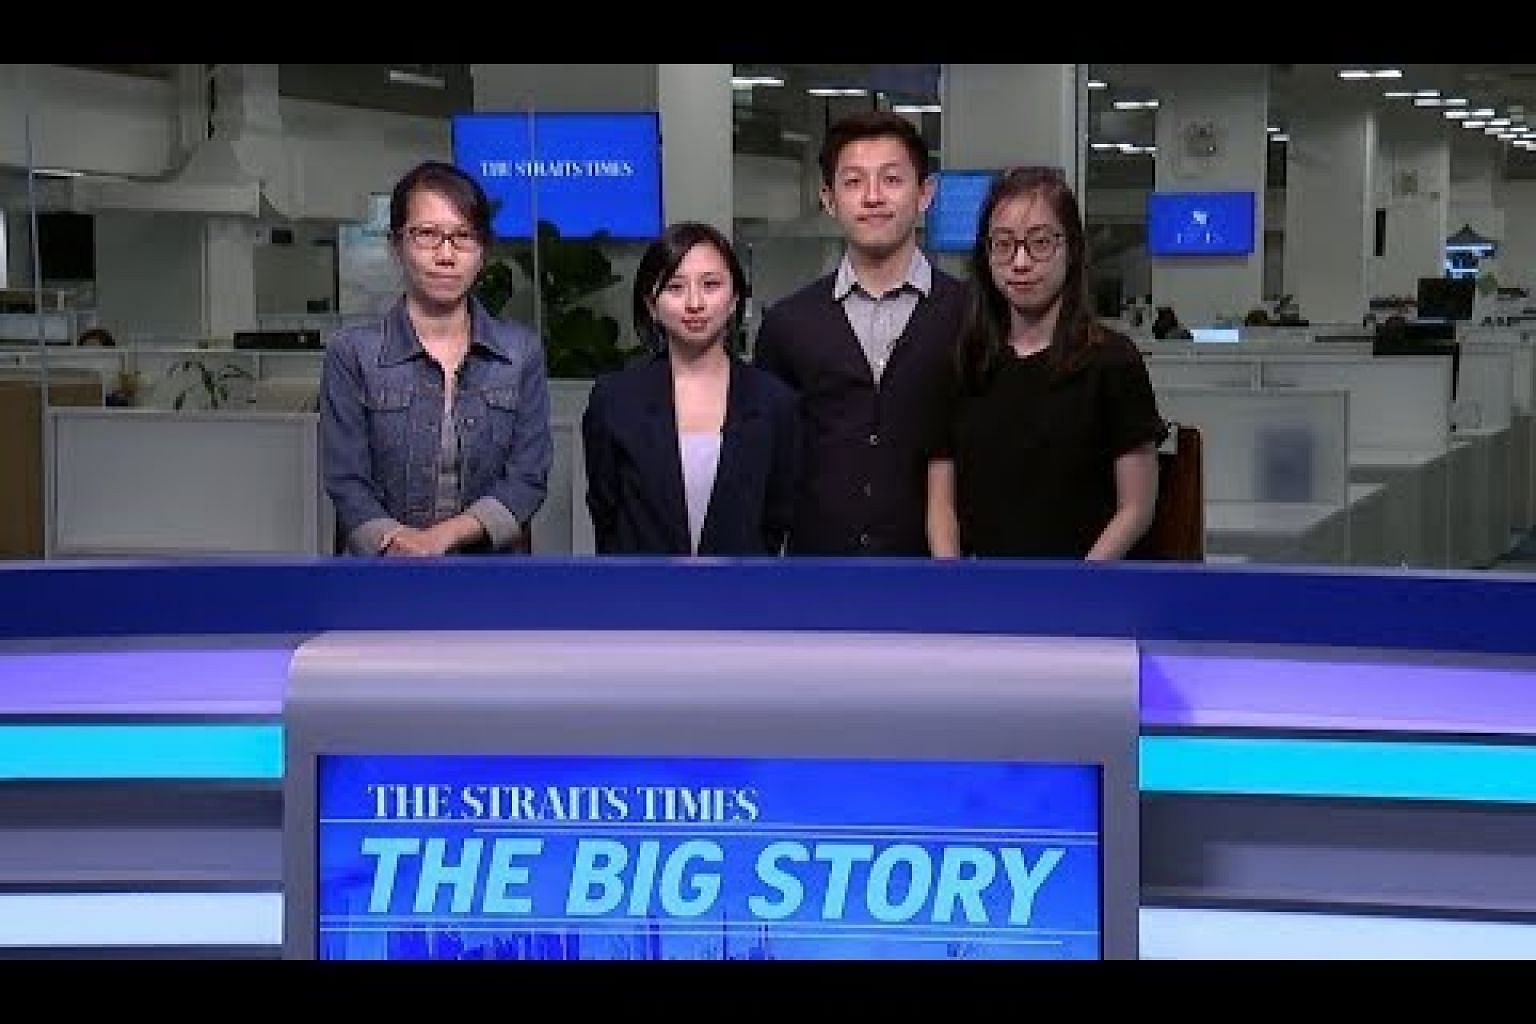 THE BIG STORY: Four 5G networks to be rolled out | Chiam See Tong steps down | Sulli's death